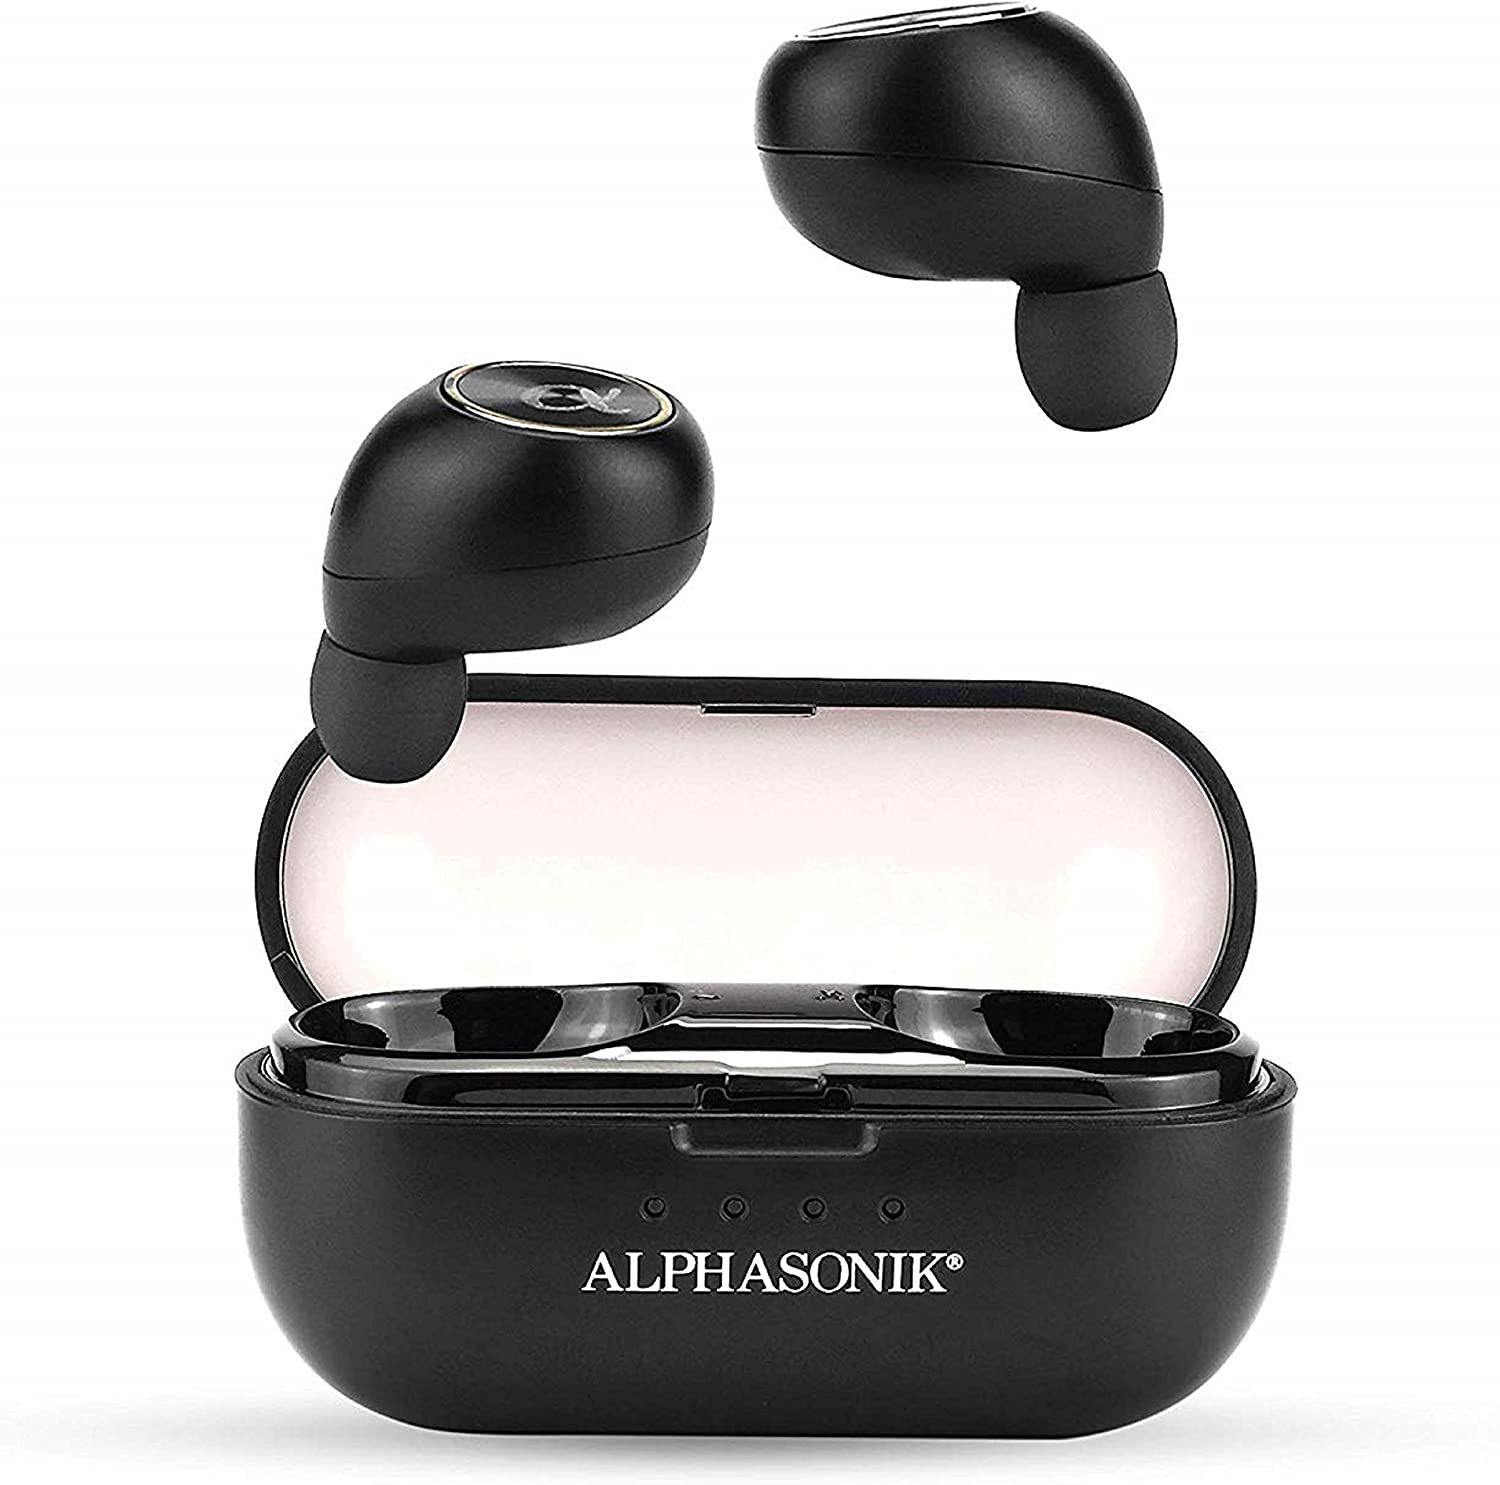 Alphasonik True Wireless Earbuds Bluetooth Noise Isolating Water-resistant Headphones Touch Control Sports in-Ear Earbud TWS Stereo Sound Mini Headset Built-in Mic Extra Bass Portable Charging Case